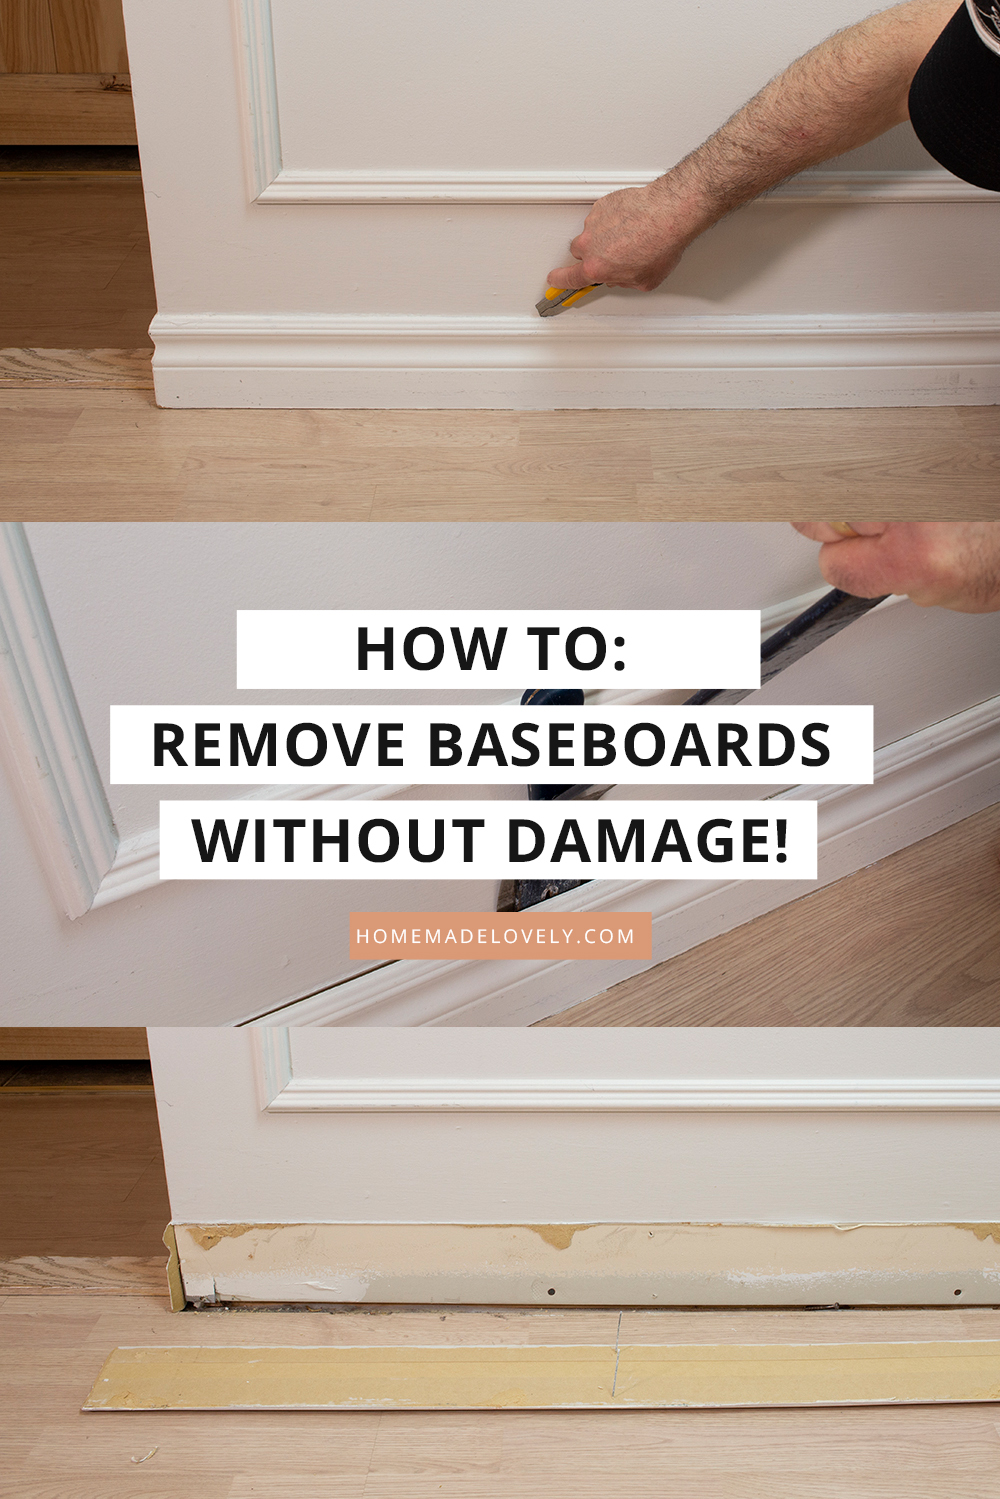 How To Remove Baseboards Without Damage For Reuse In 2020 Removing Baseboards Baseboards Cleaning Hacks